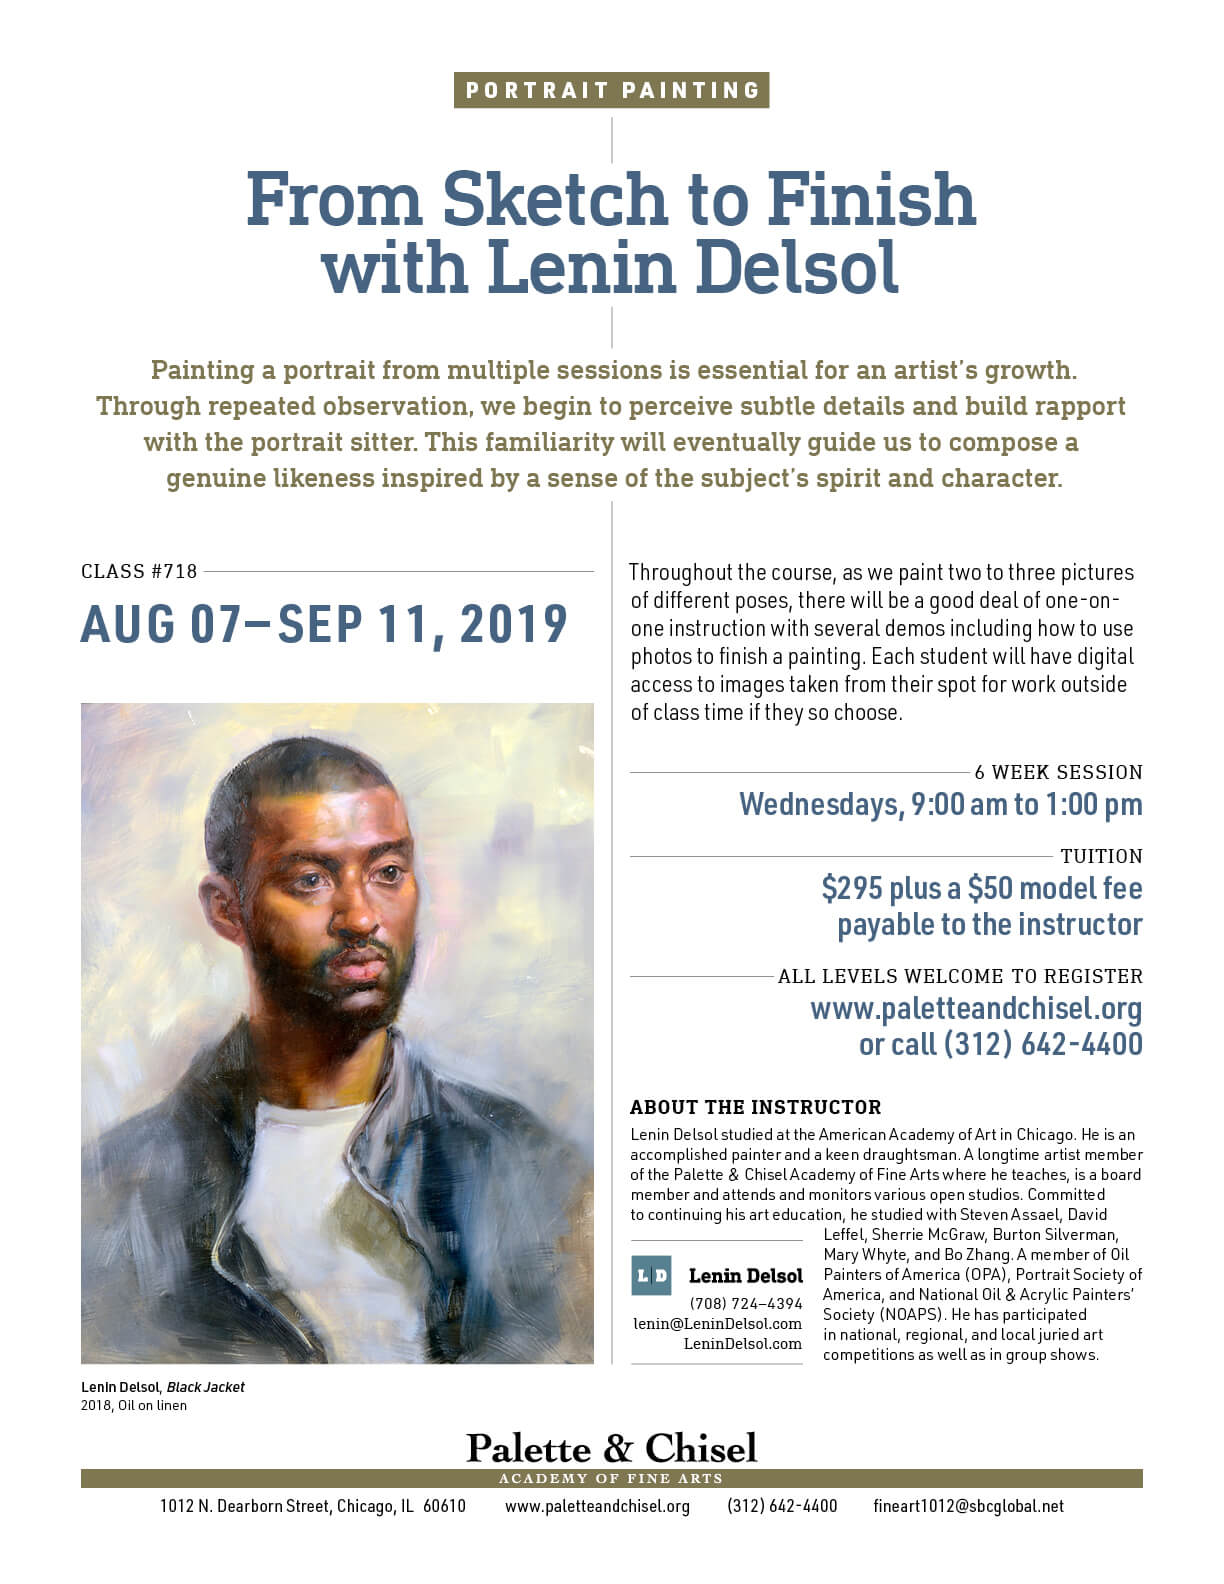 Portrait painting class flyer with an oil portrait of a young man wearing a black jacket by artist Lenin Delsol